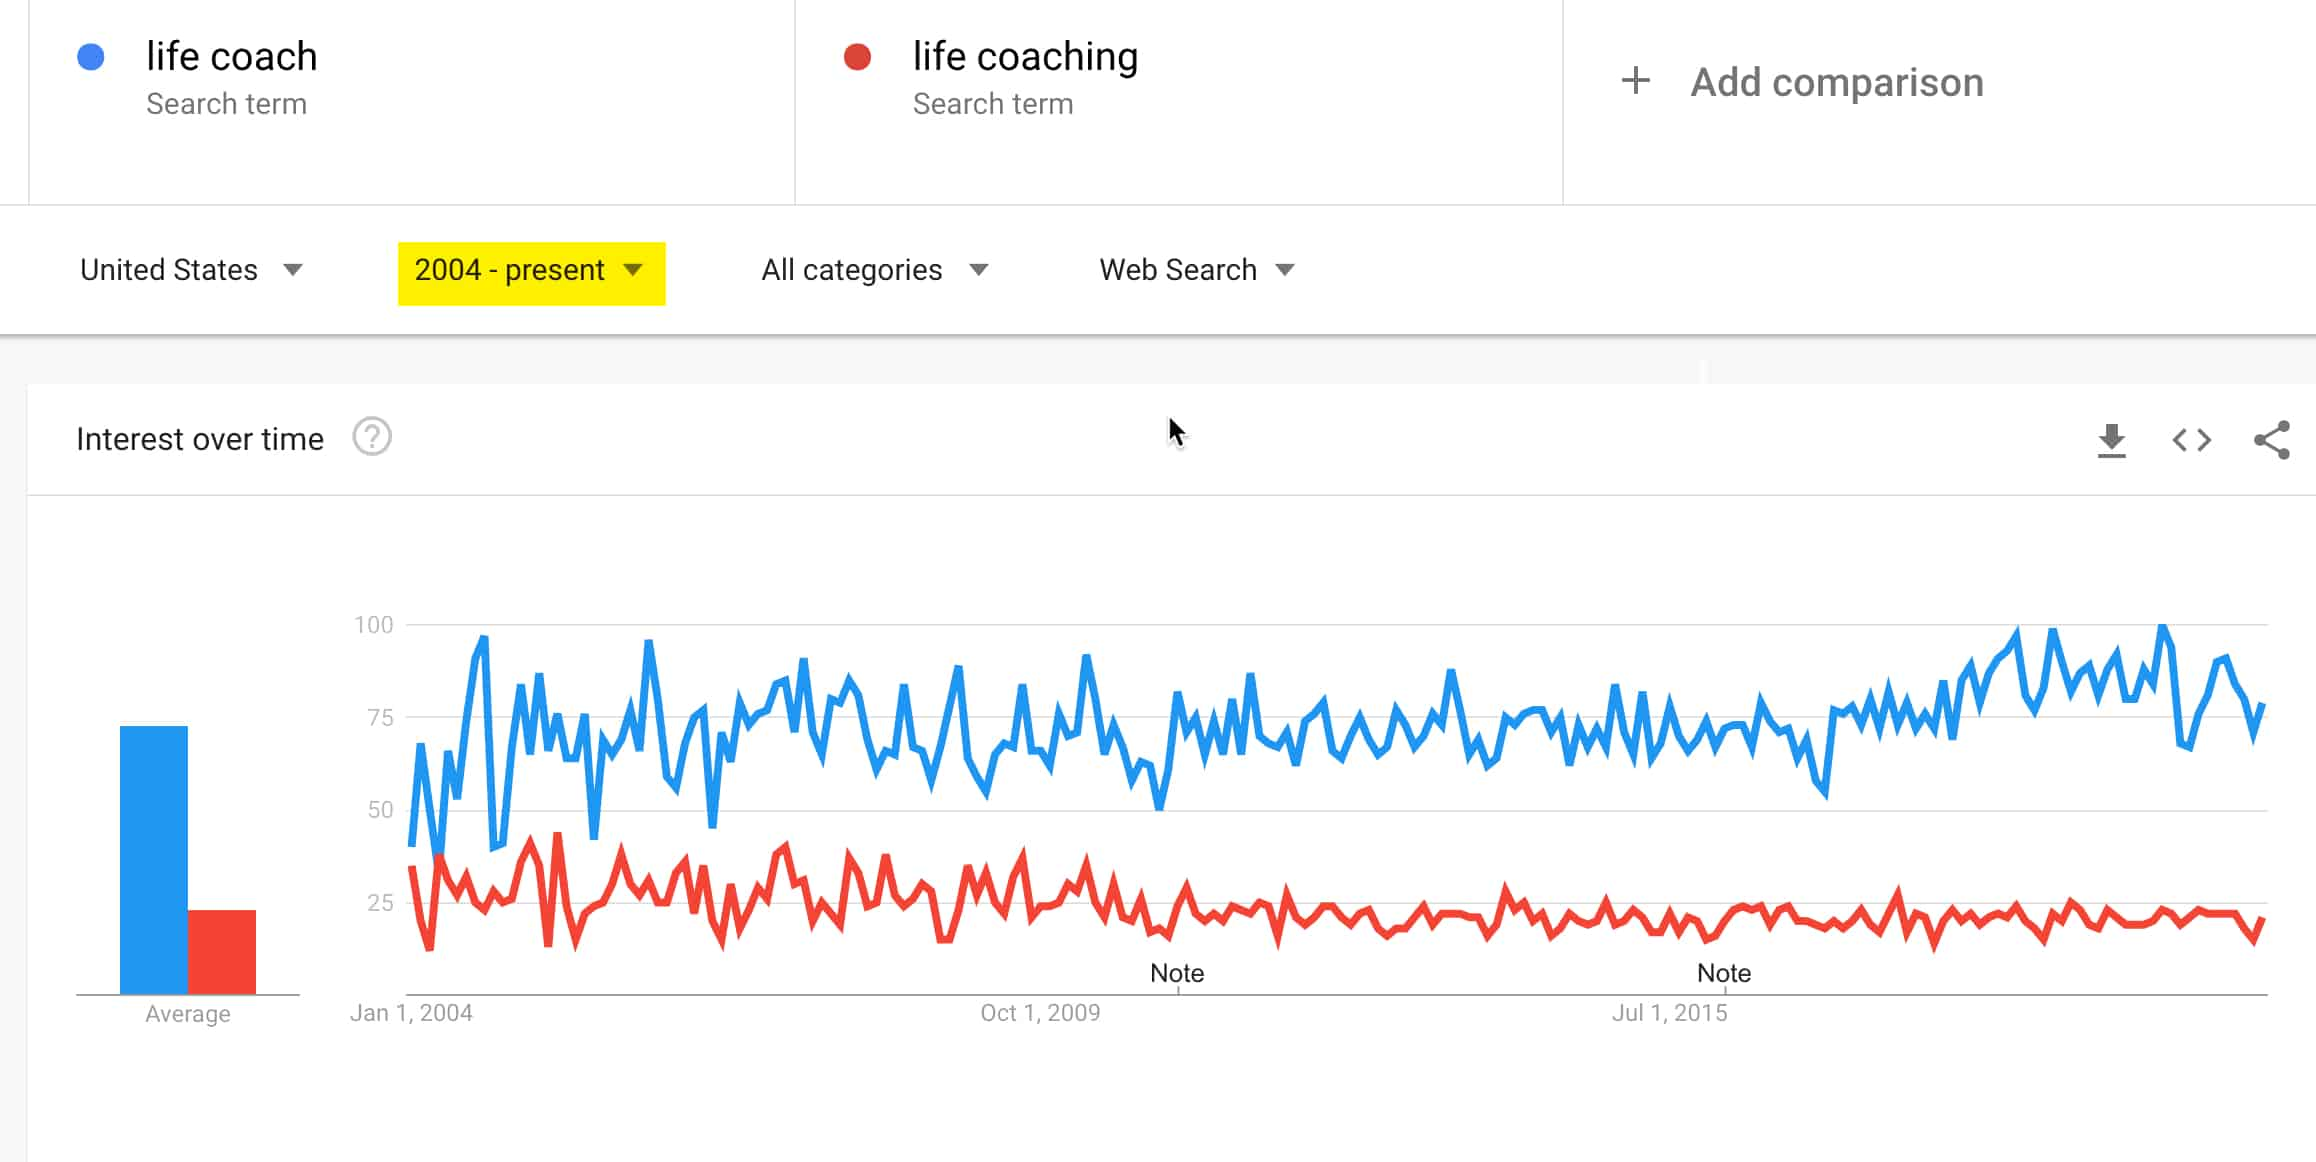 life coaching 2021 comparison